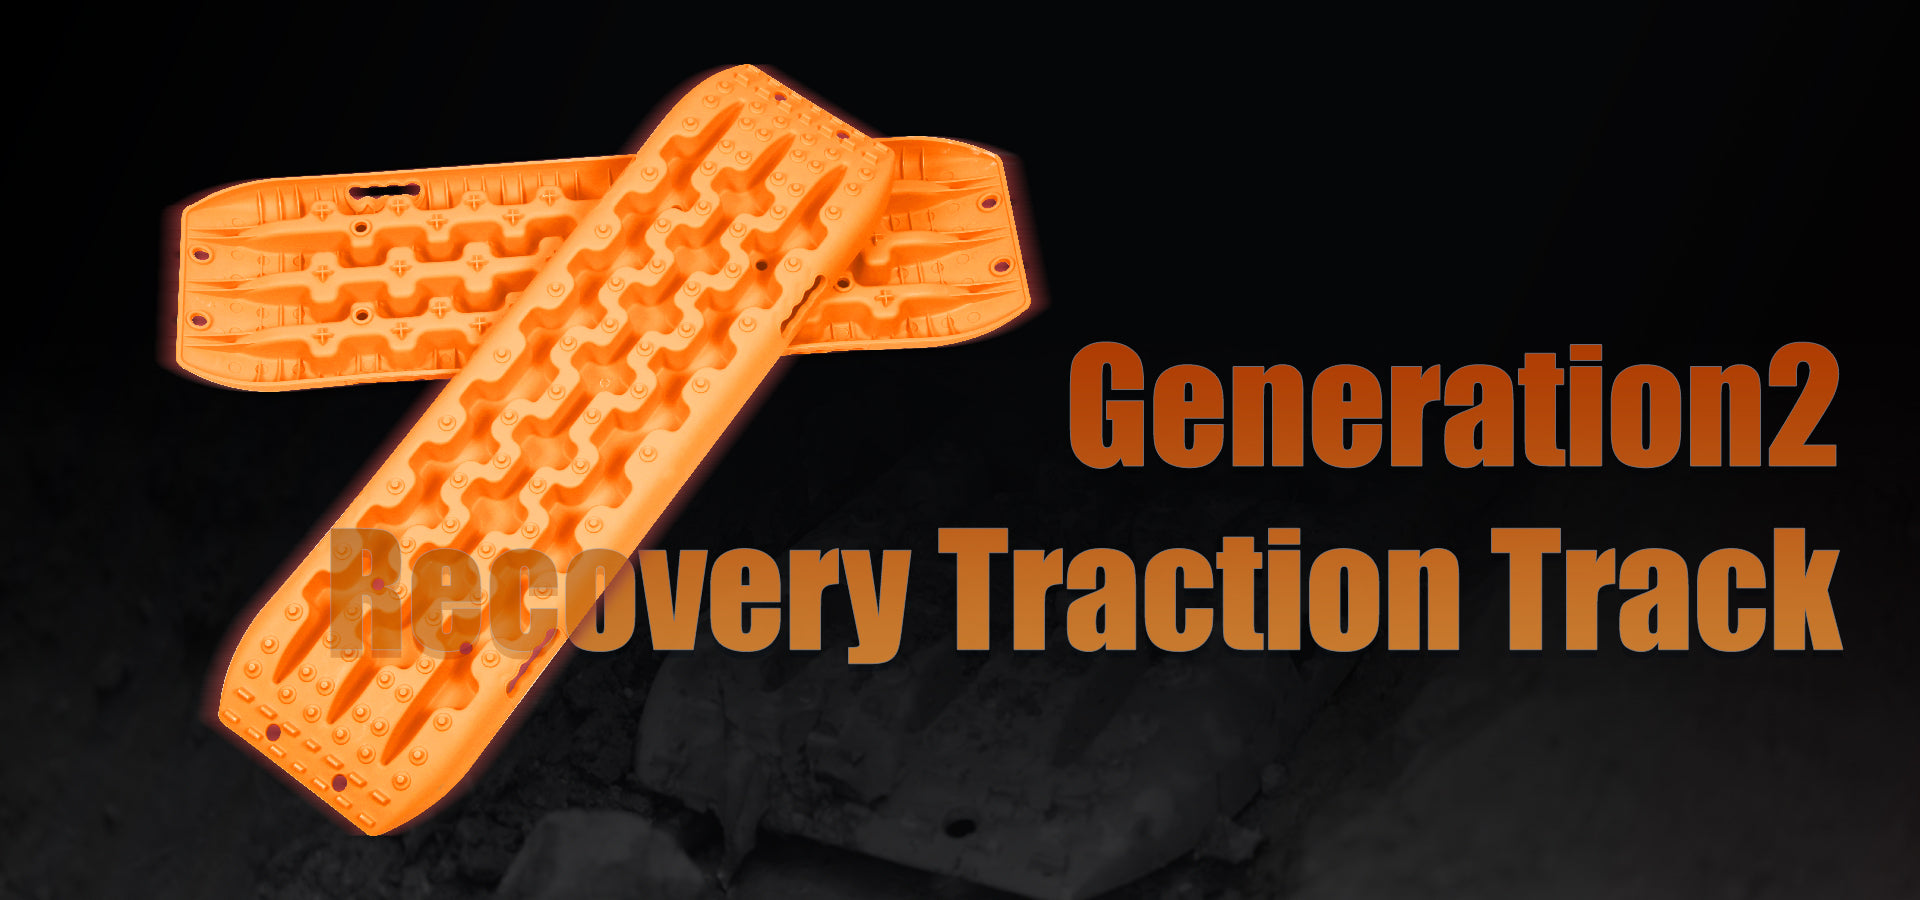 openroad-generation2-recovery-traction-tracks-2pcs-orange